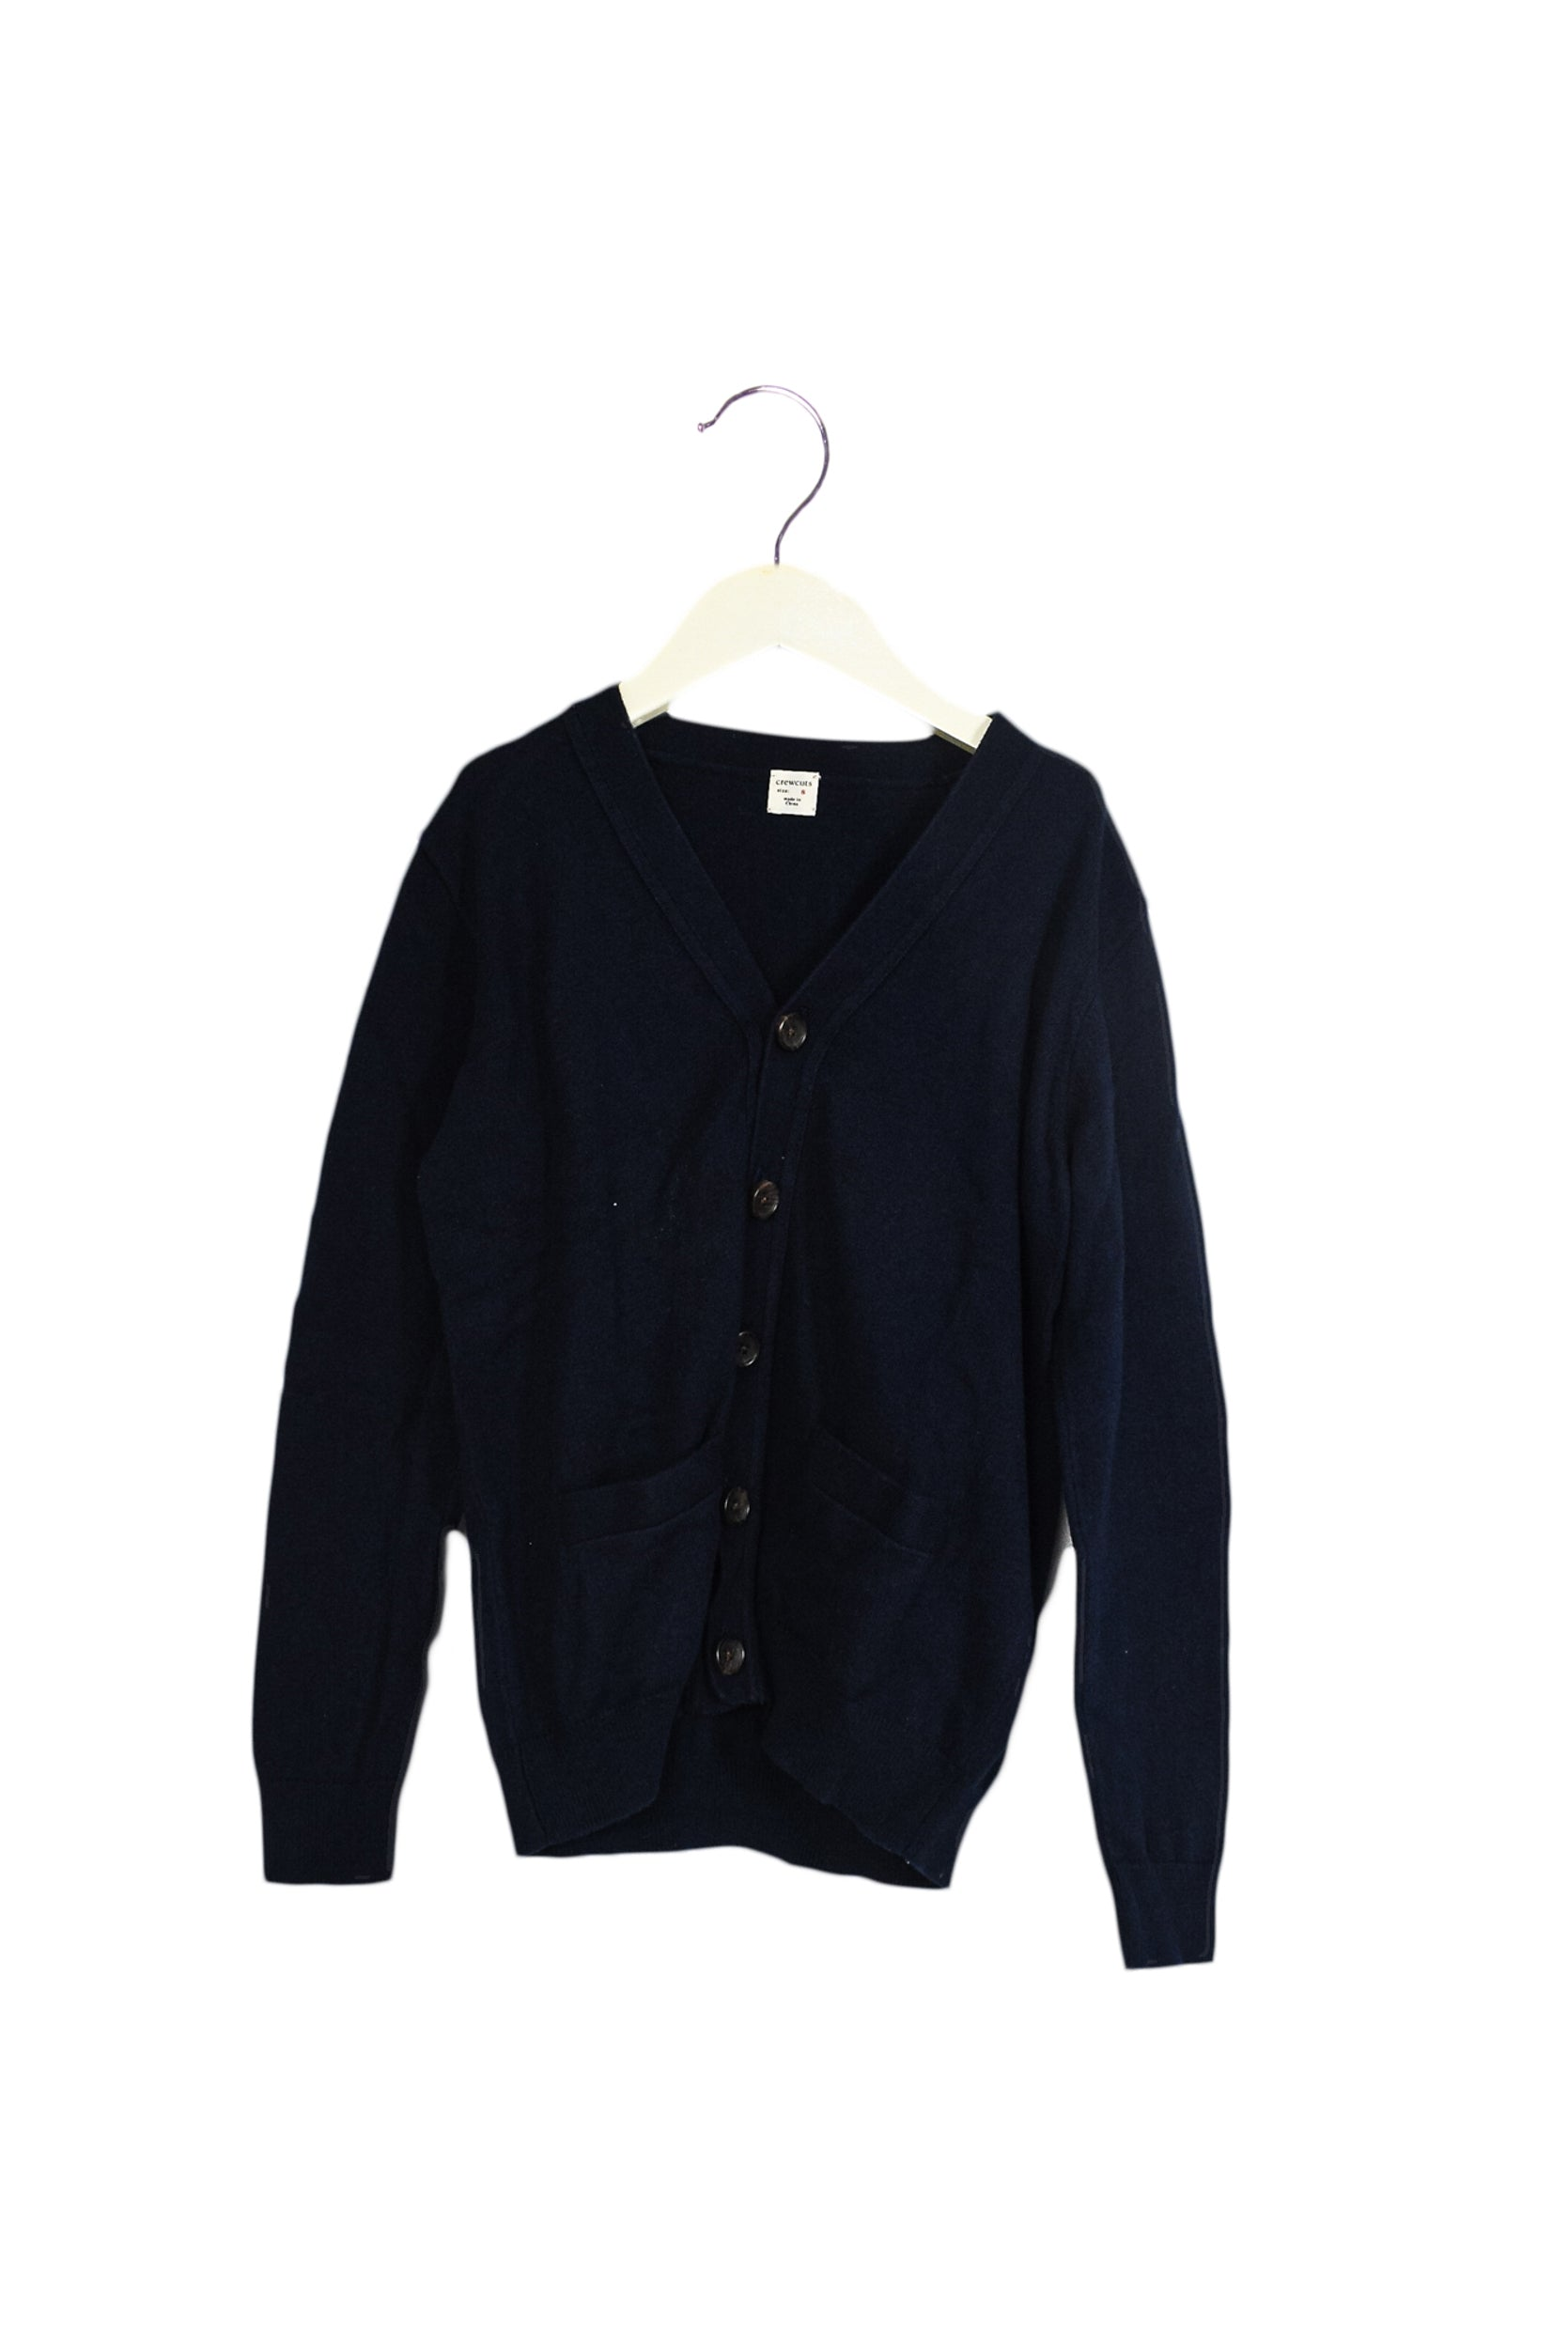 Crewcuts Cardigan 8Y at Retykle